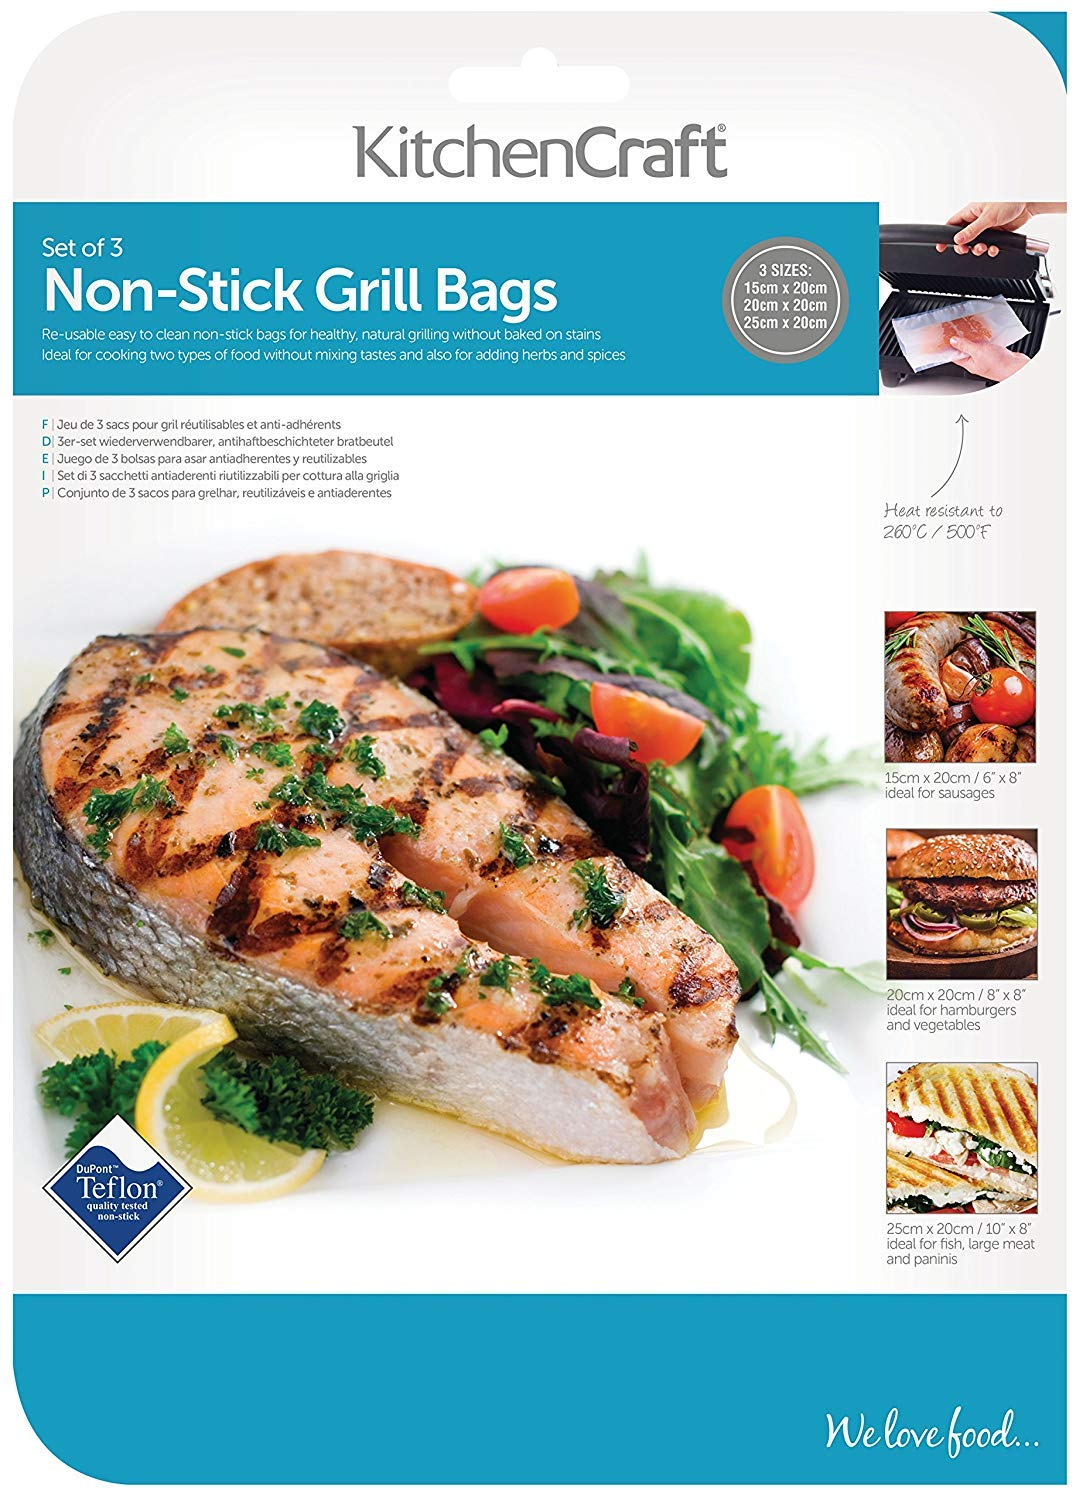 10 X Sealapack 3 Pack Fat Reducing Pads Healthy Cooking For Grill & Oven Bakeware & Ovenware